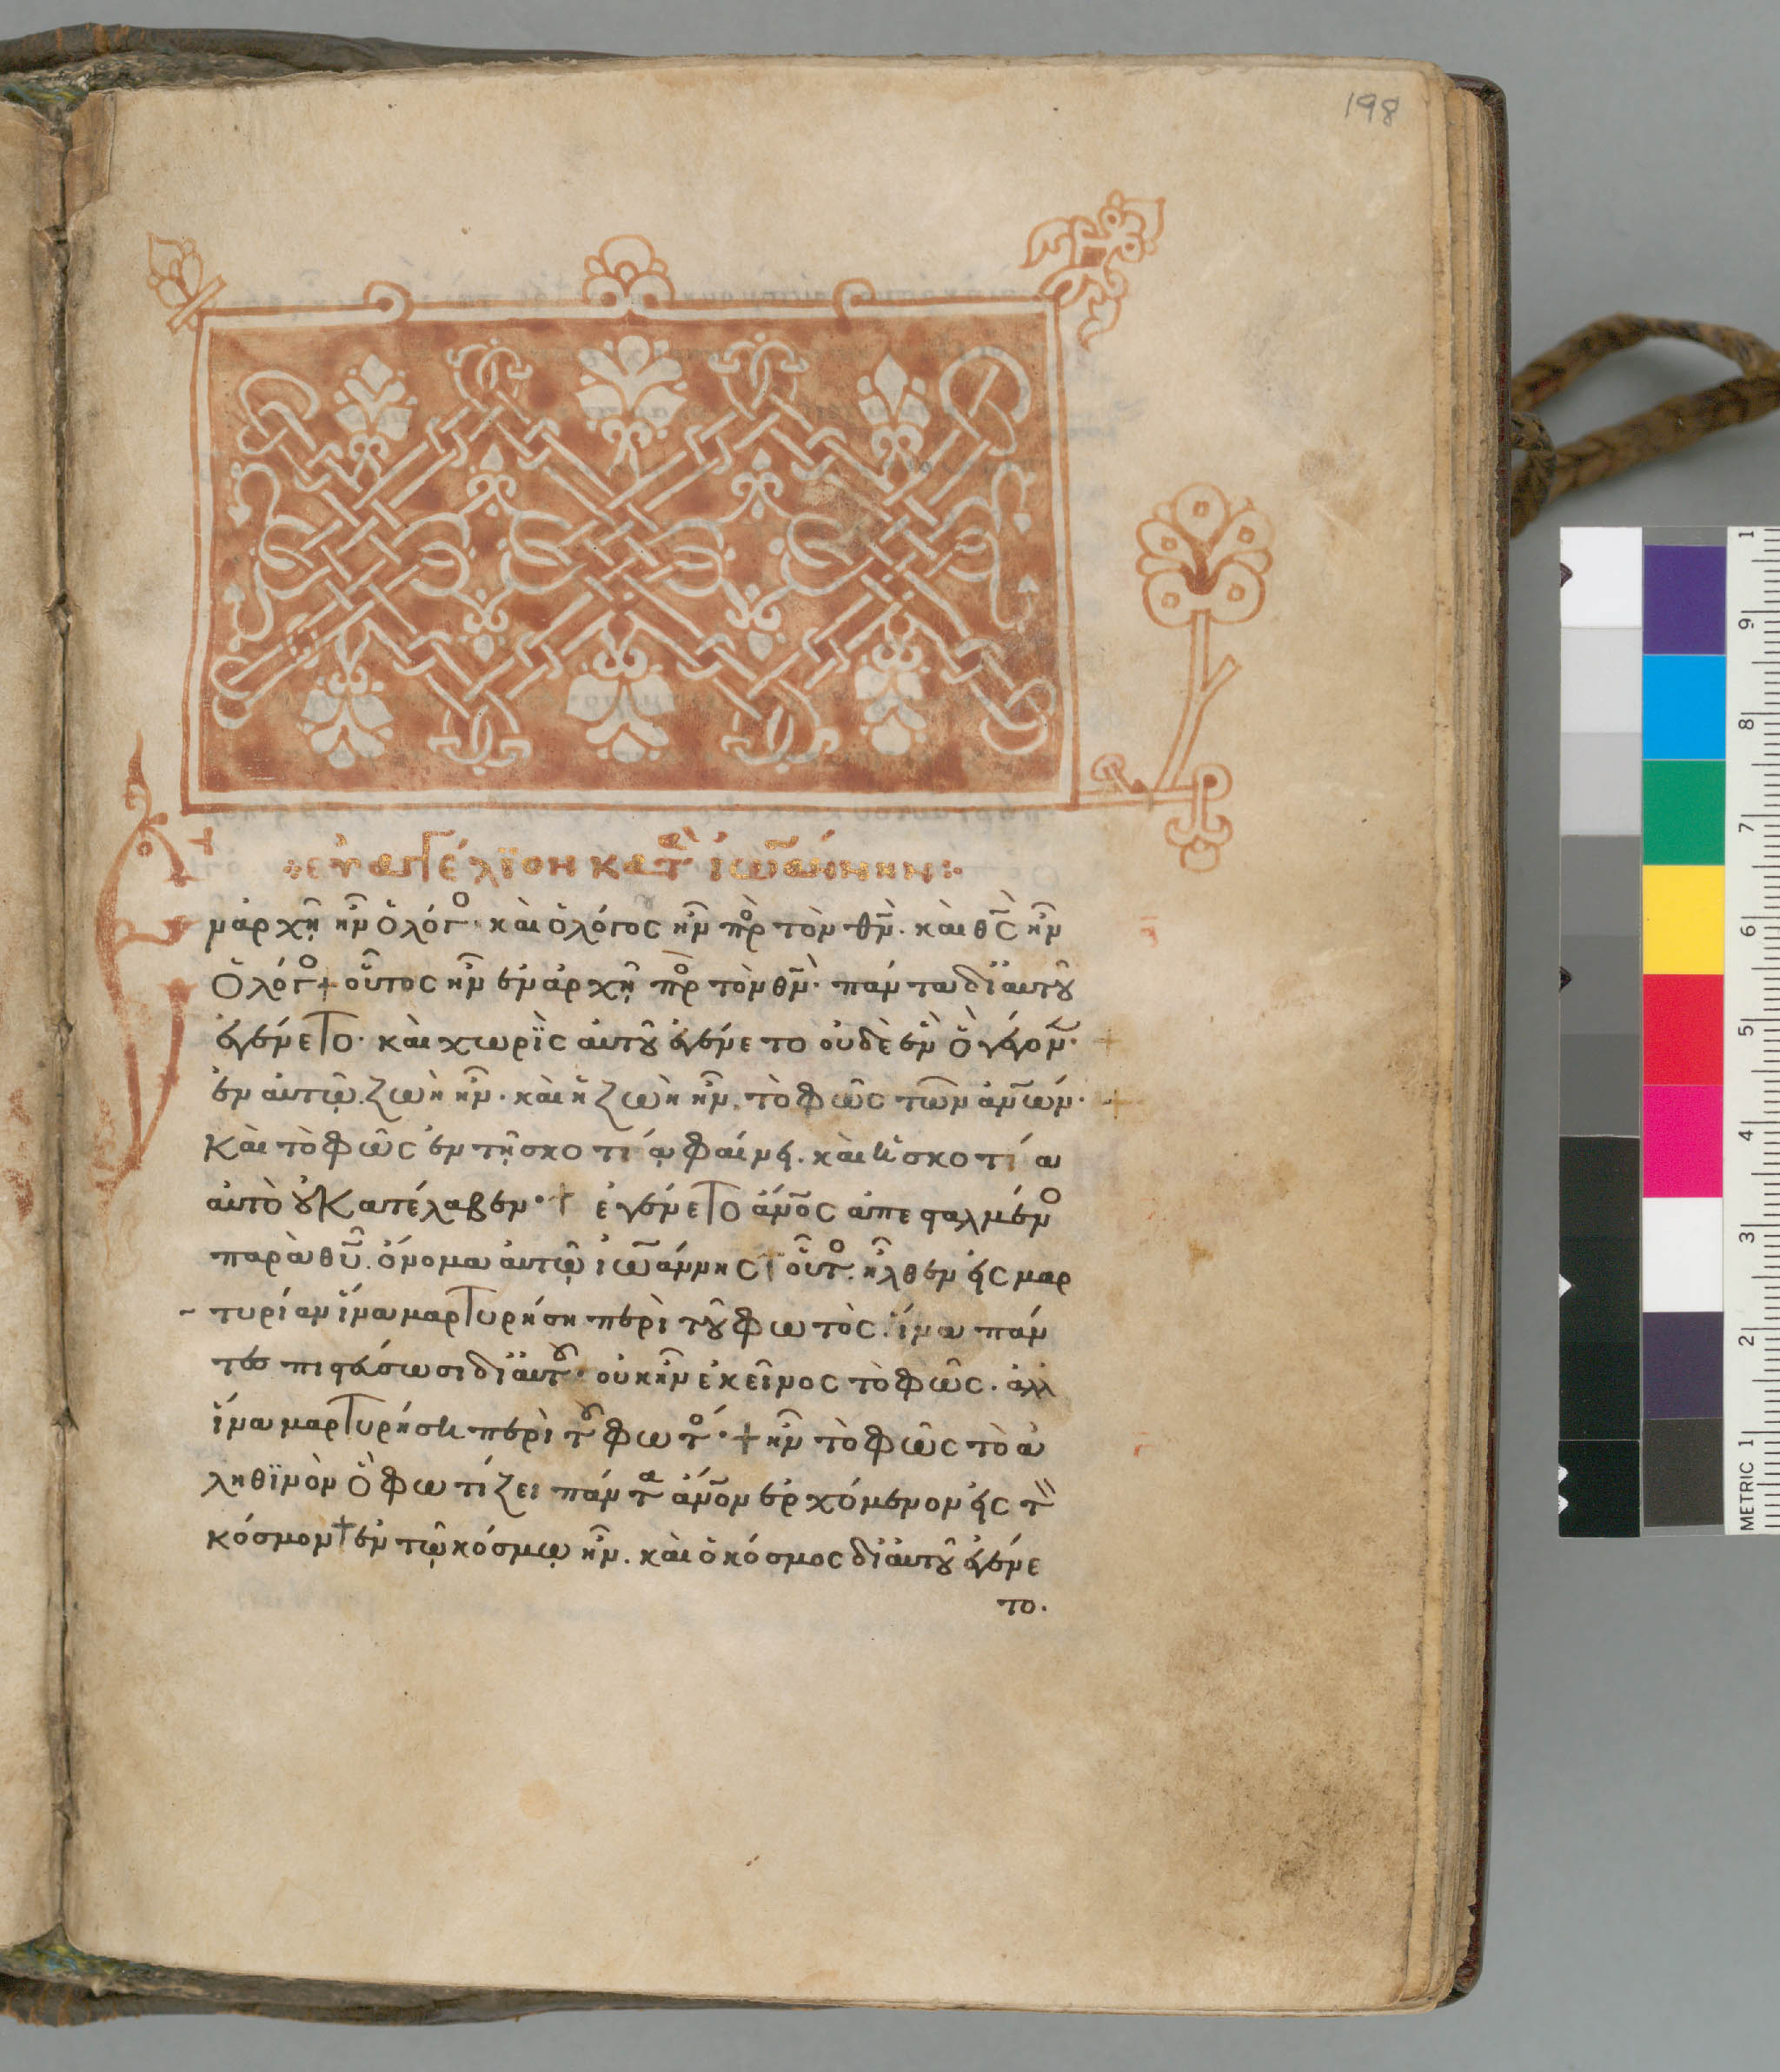 Davis, University of California, Shields Library, Special Collections, UCD BS2551 A4 no. 2641, f. 198